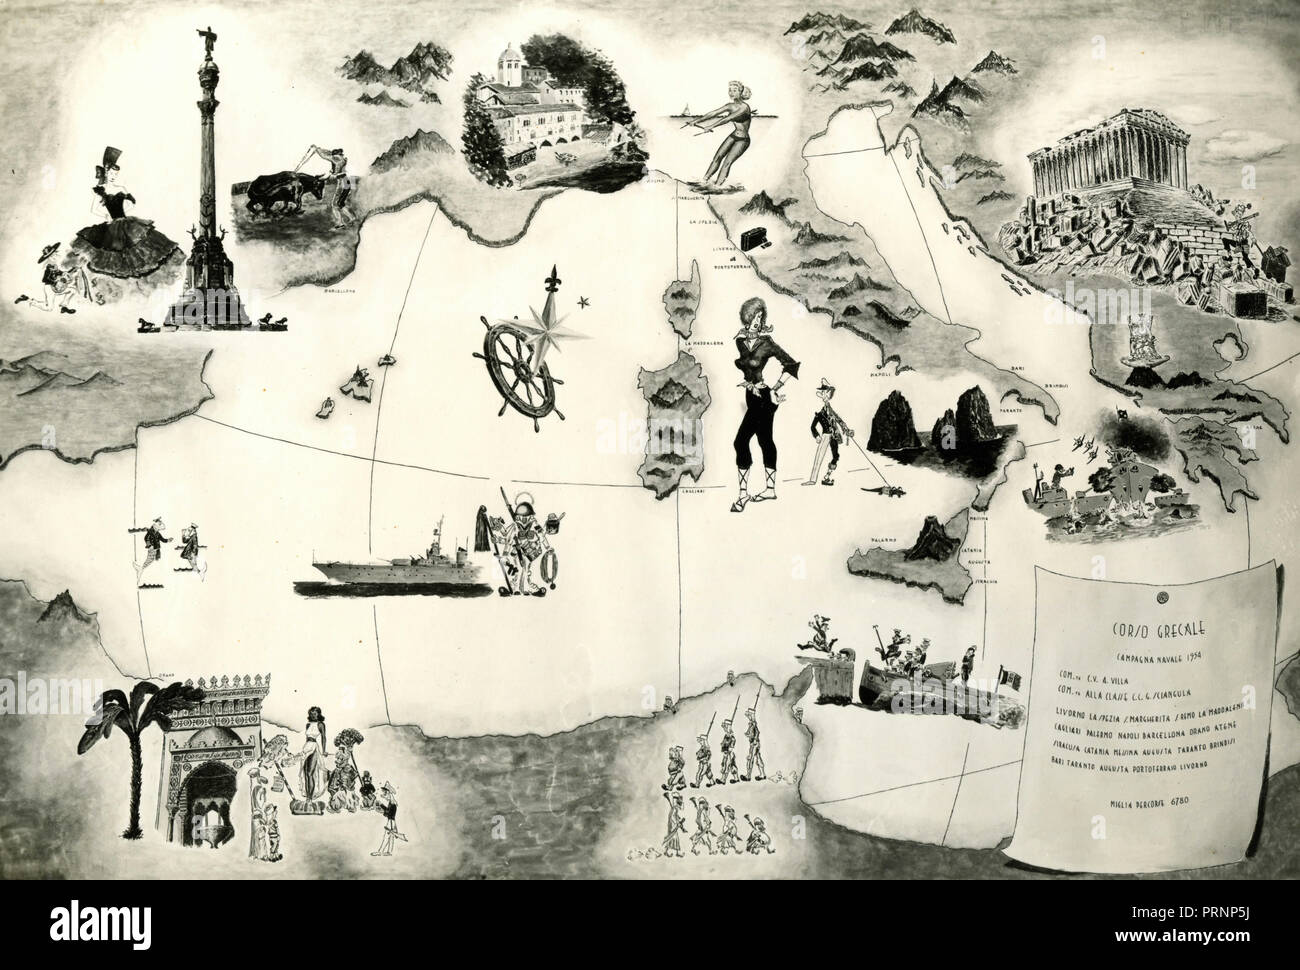 Italian Navy ship Grecale Naval campaign 1954 representation - Stock Image